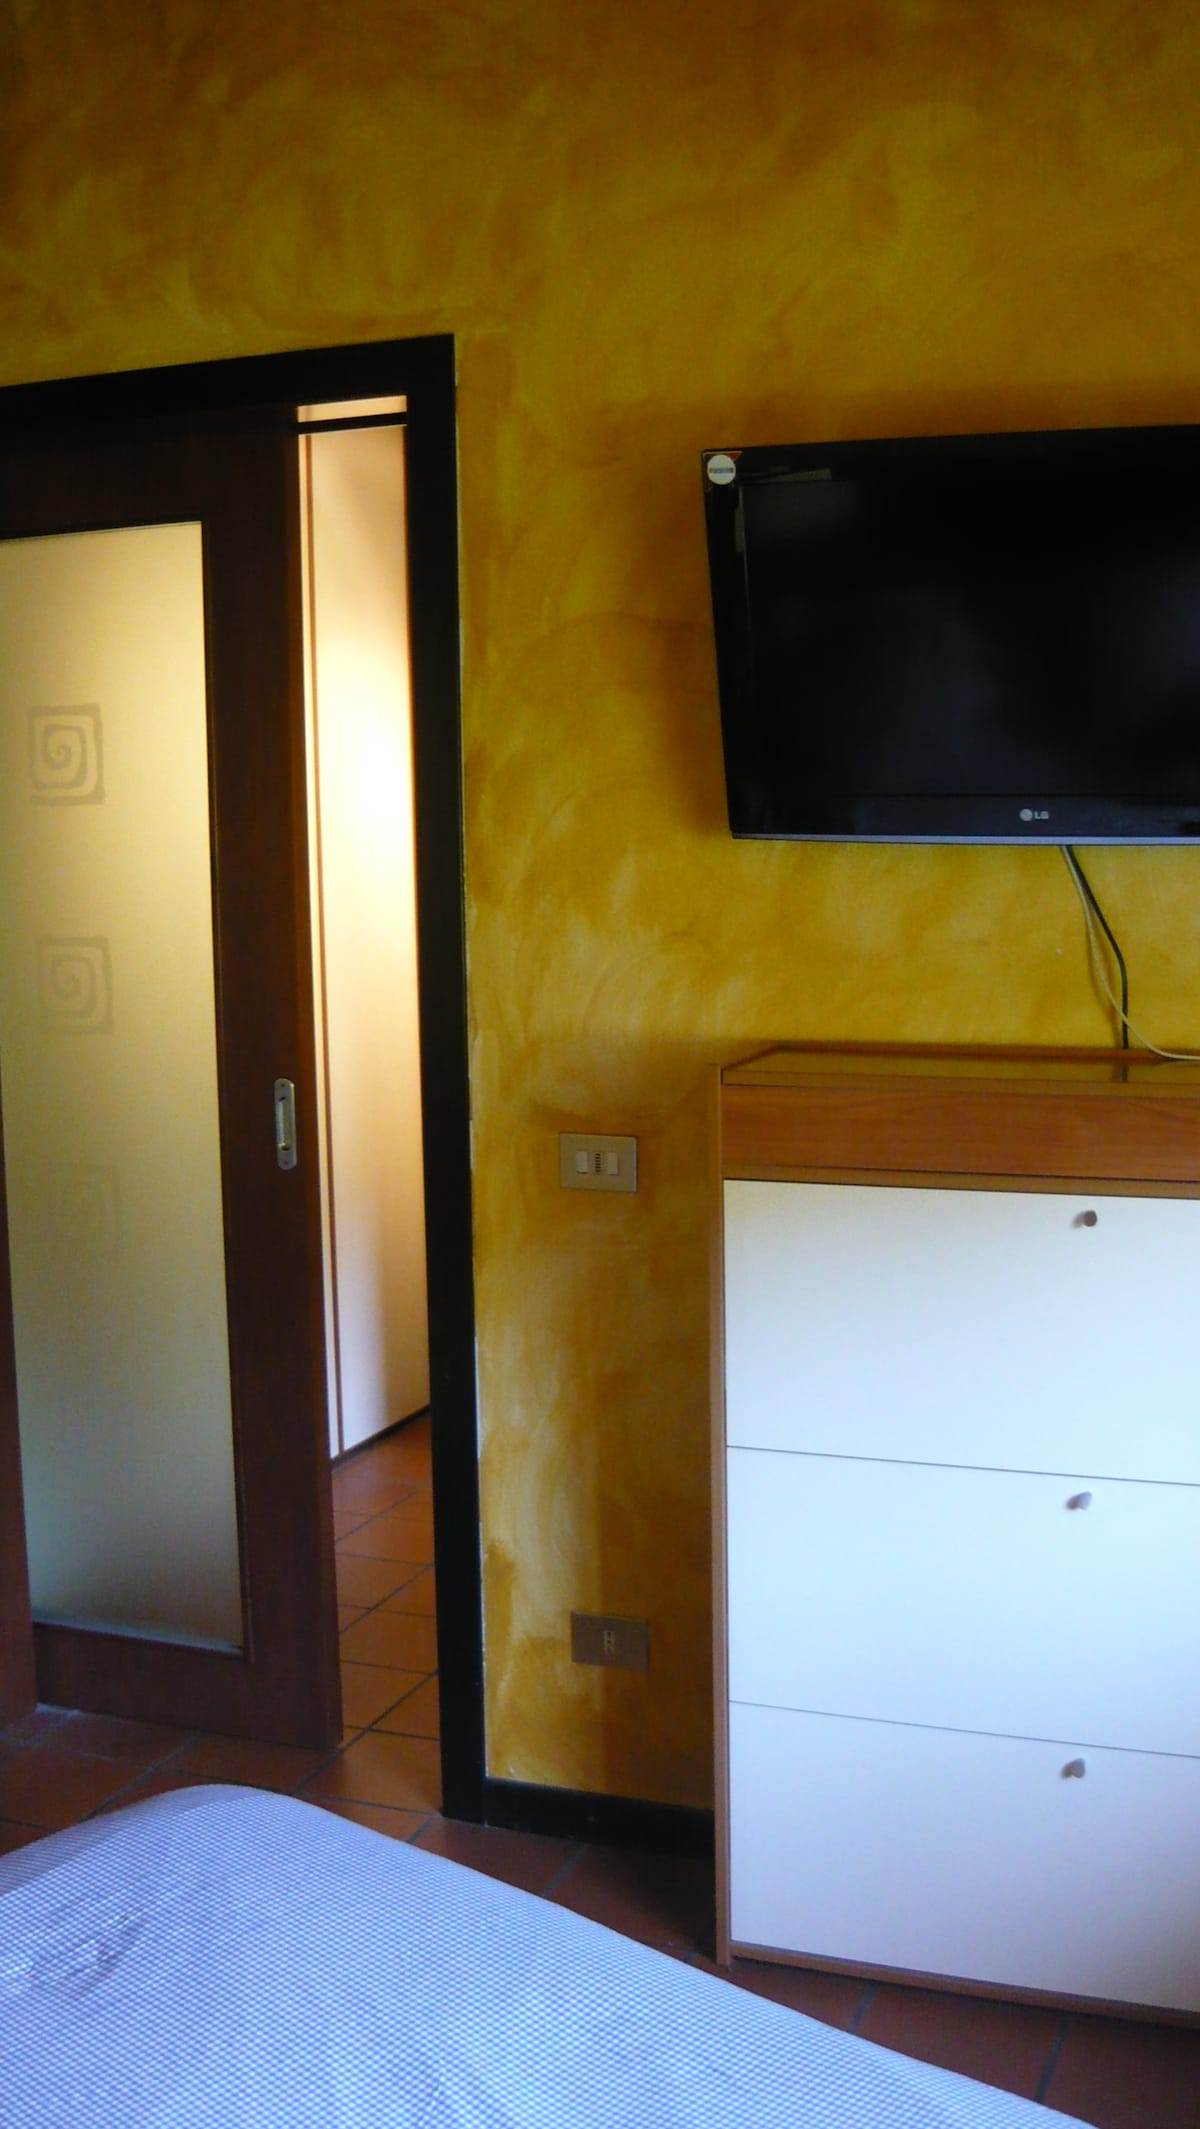 CAMERA CON TRAVI A VISTA.- DOUBLE BEDDED ROOM